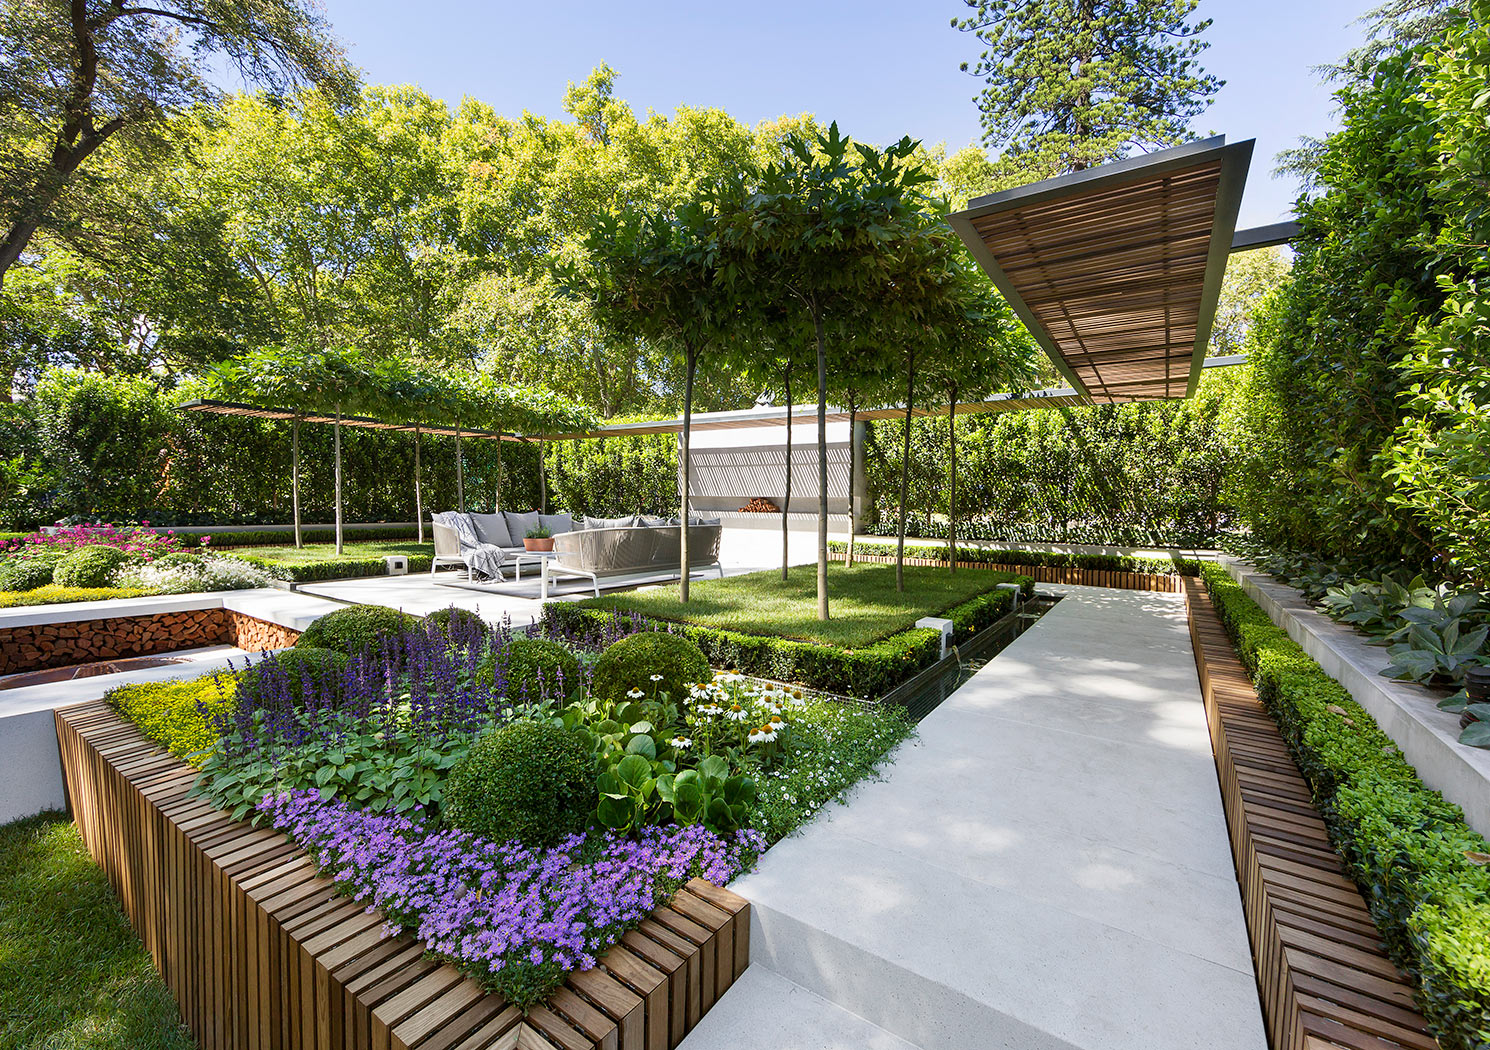 Landscape design melbourne nathan burkett design for A garden design